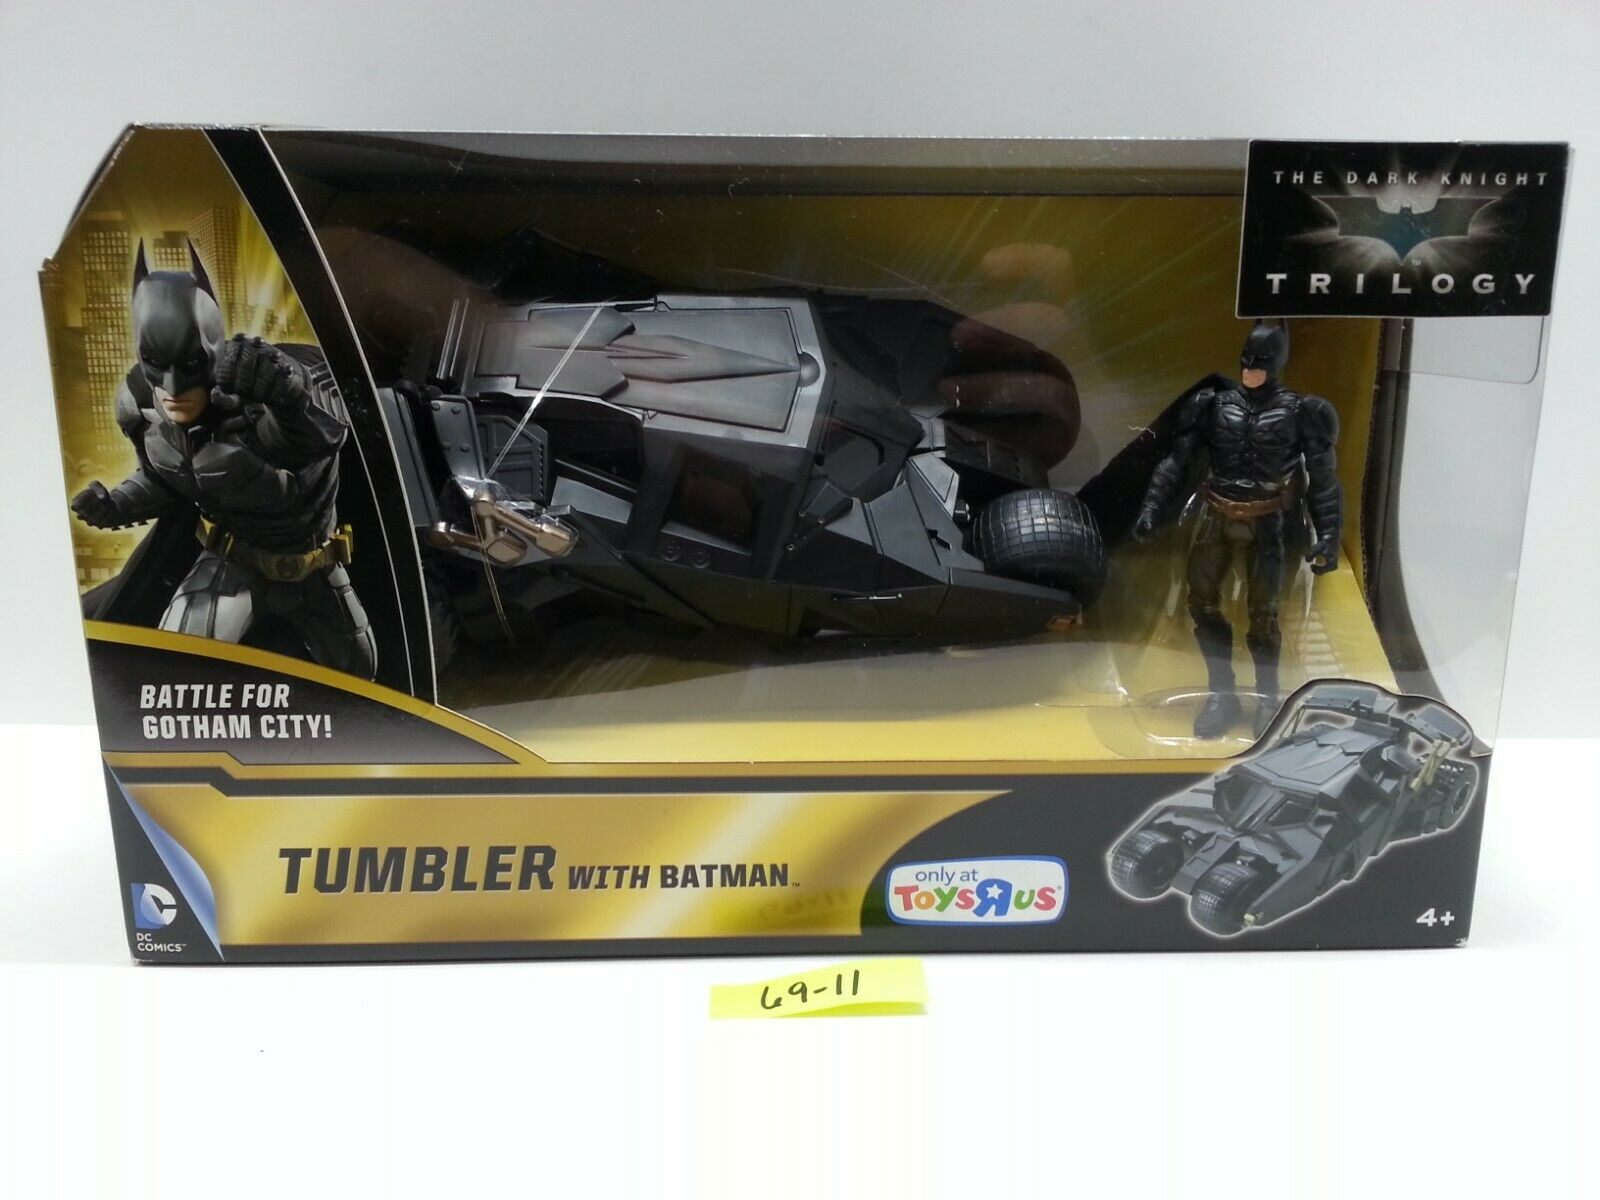 2013 Mattel Dark Knight Trilogy TRU - TUMBLER with BATMAN Action Figure MIB